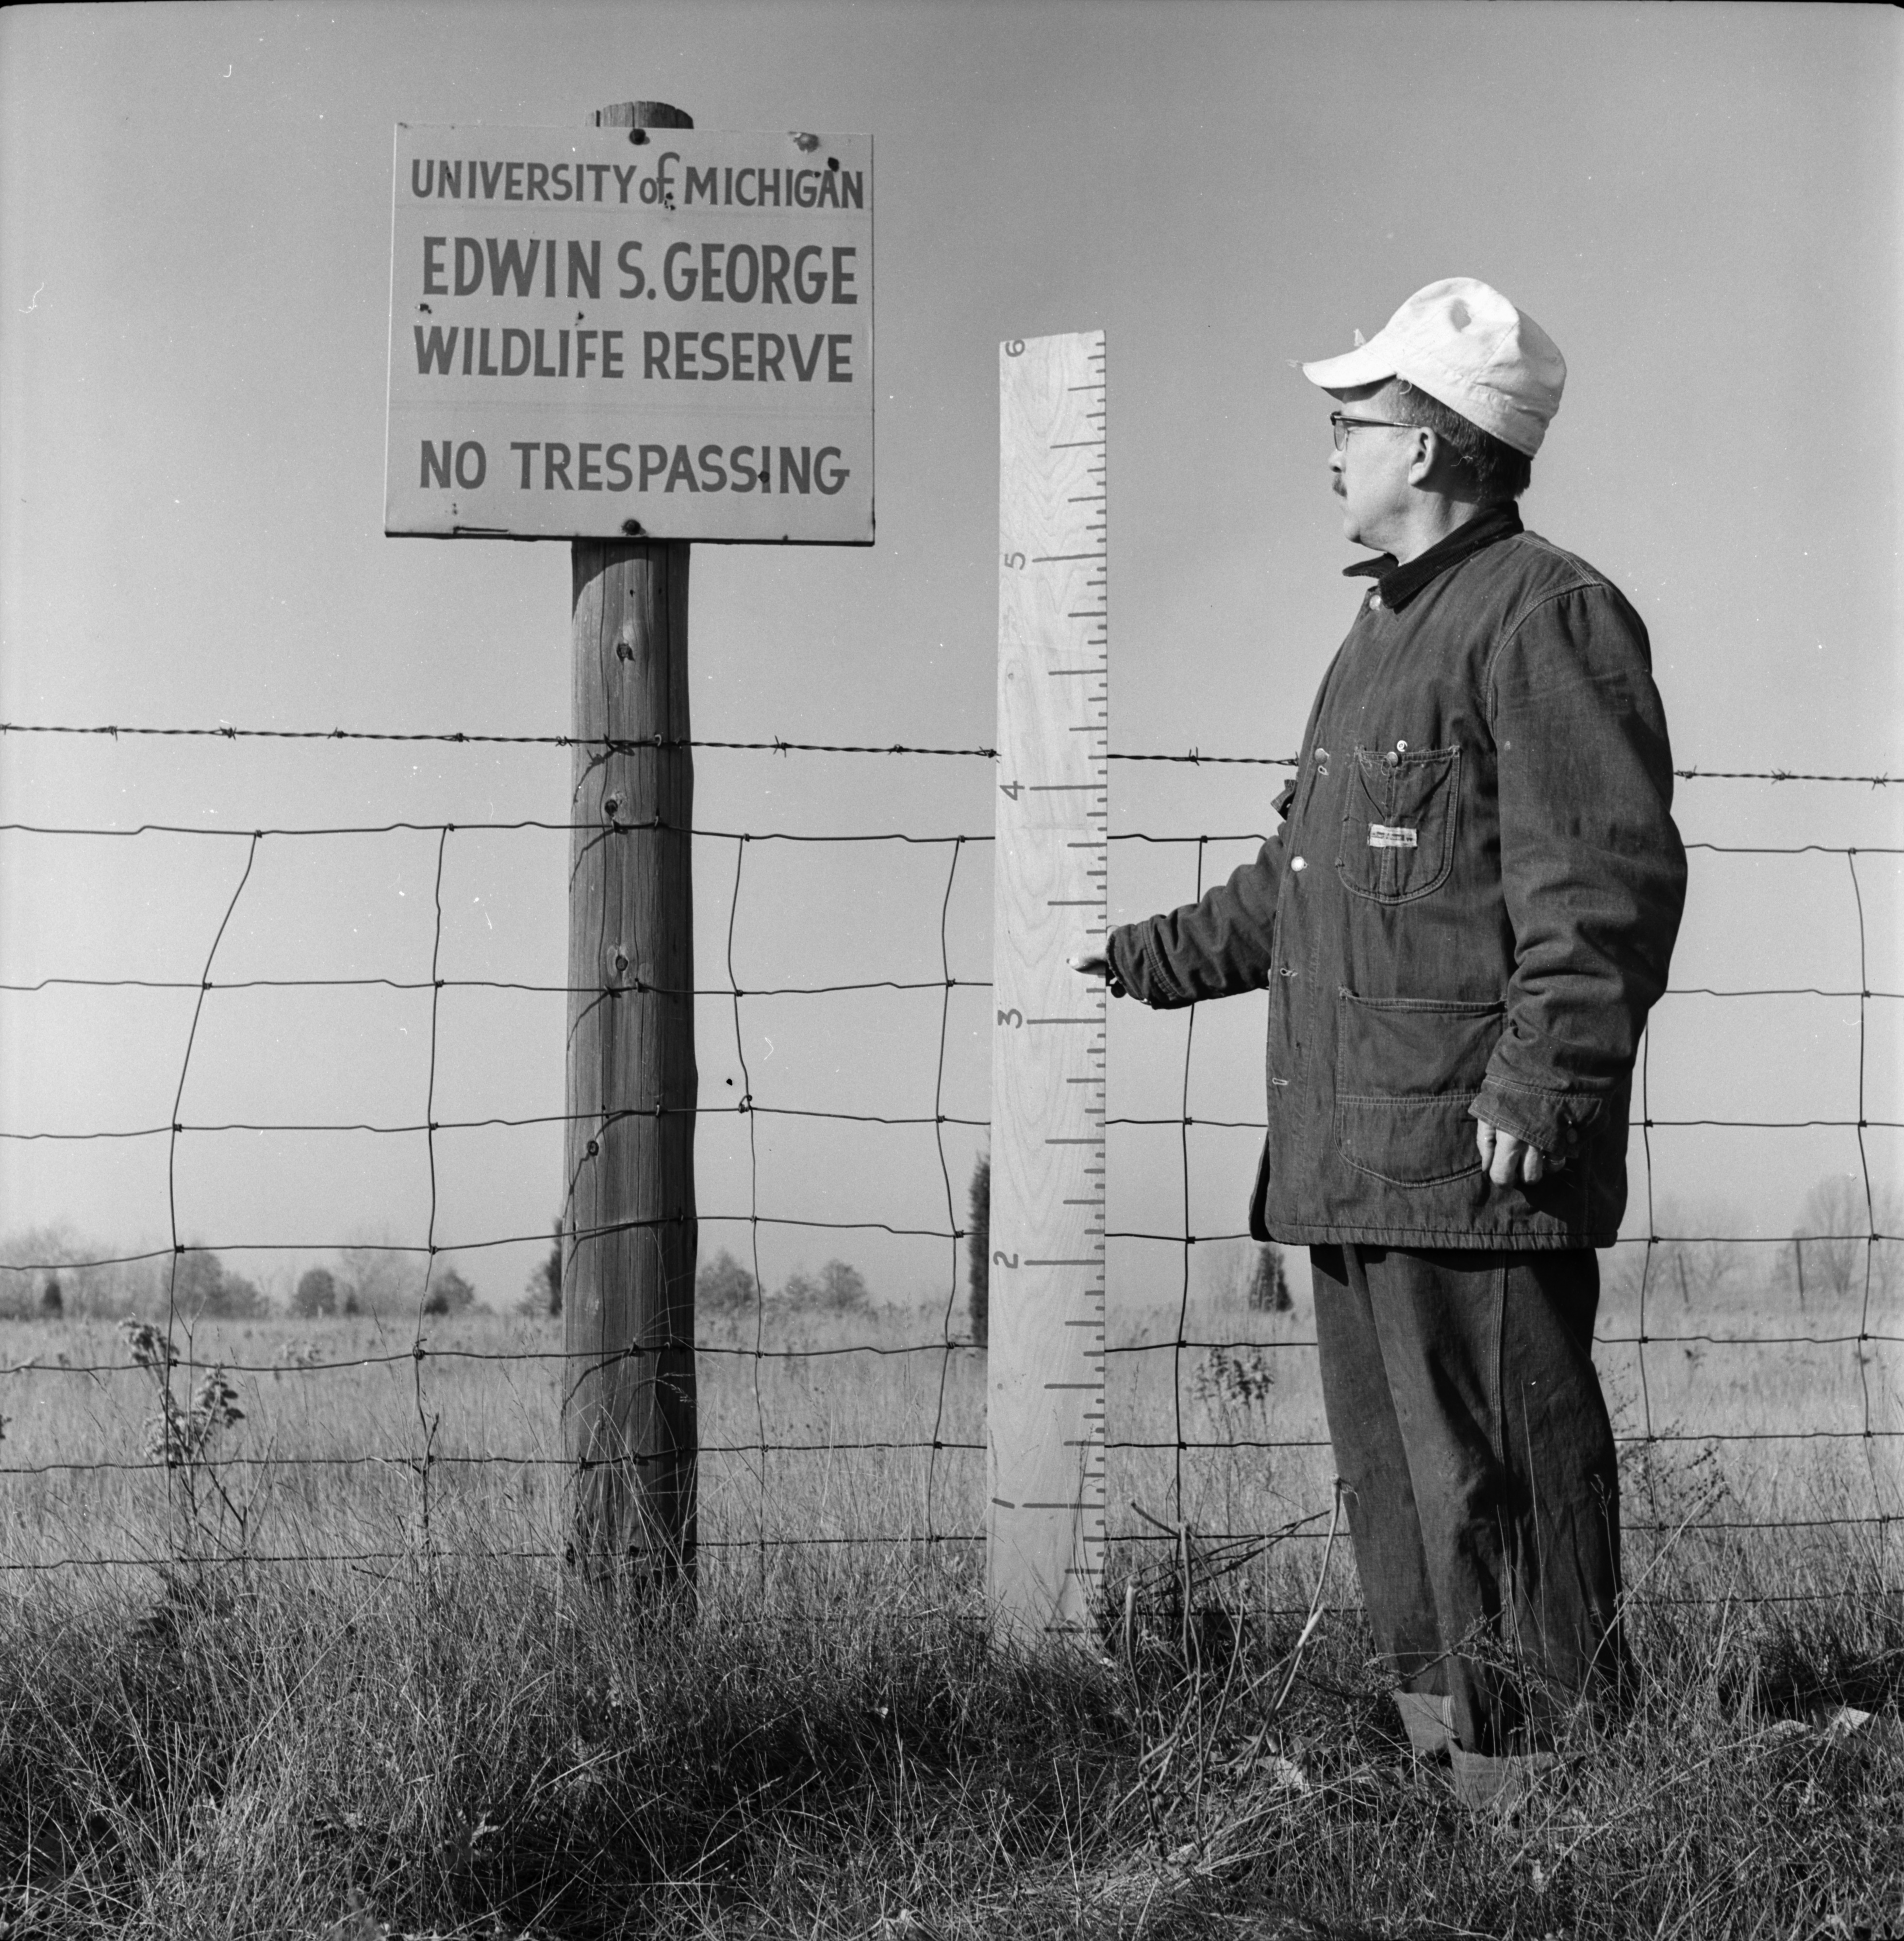 Fence At Edwin S. George Wildlife Reserve, December 1962 image